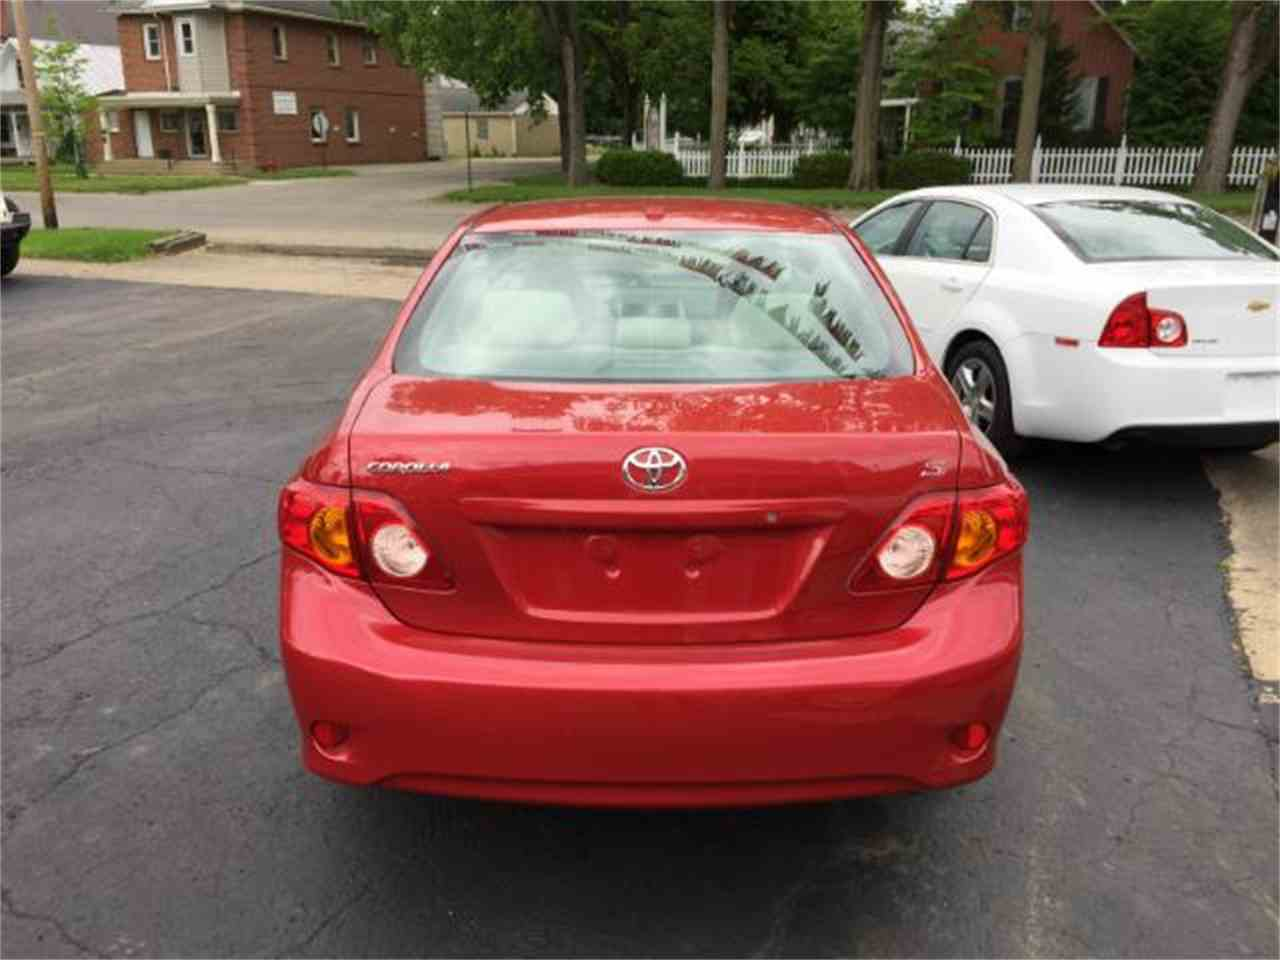 Large Picture of '09 Corolla located in Ohio Offered by Goetzman Motorcar LLC - M78N